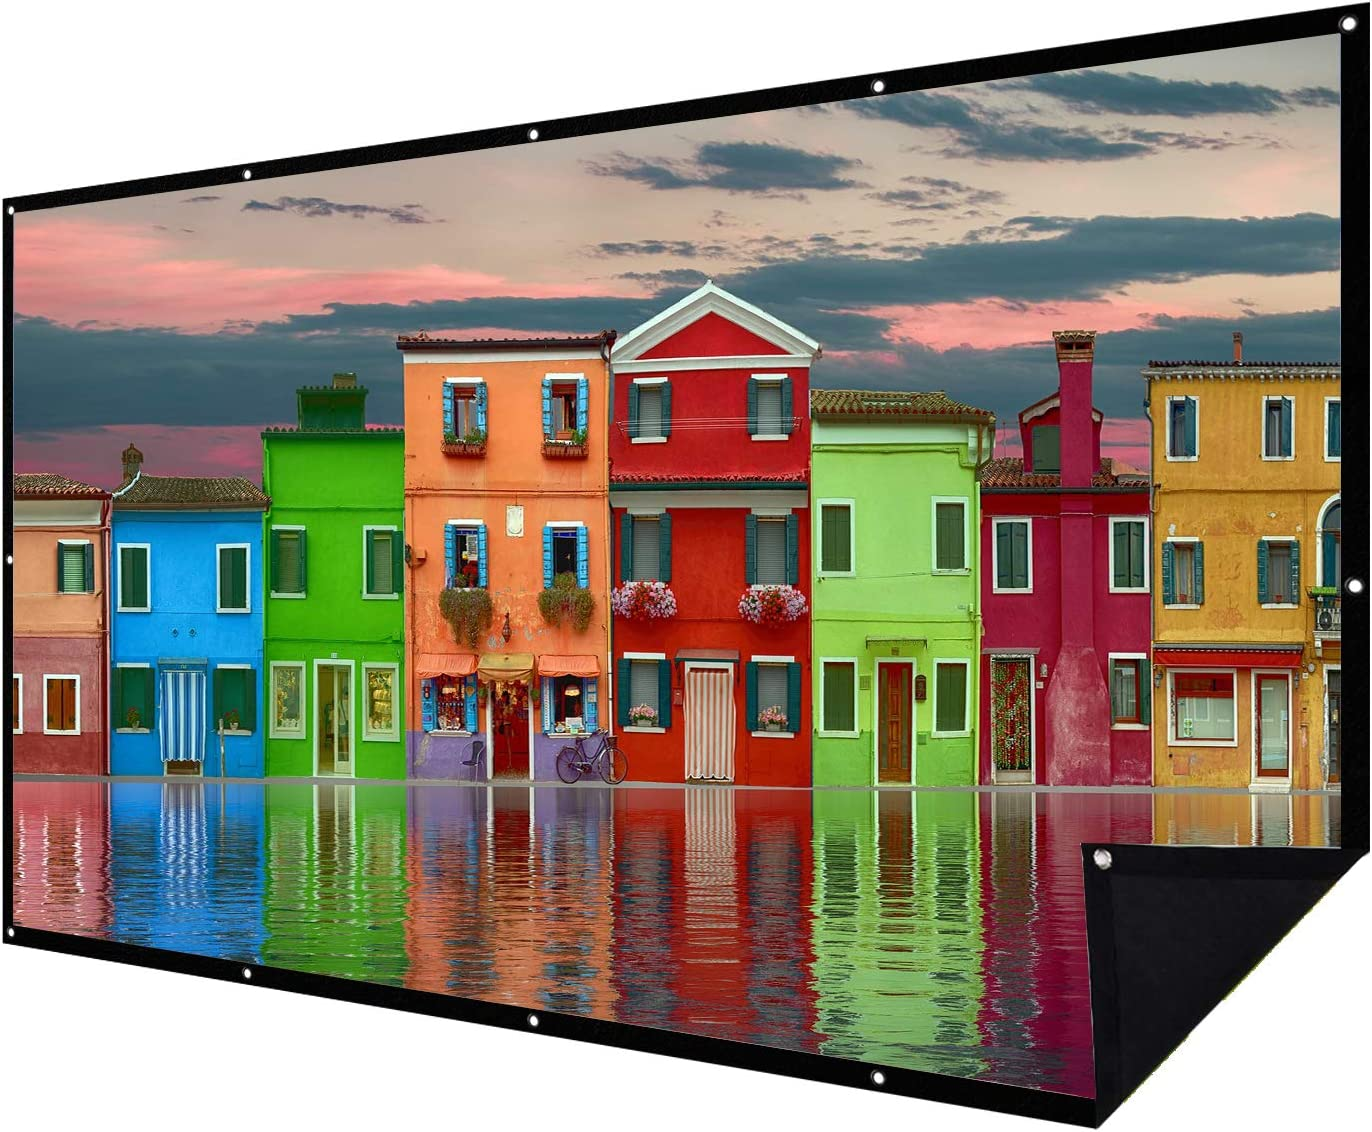 Double Layer Projector Screen specialty shop 100 List price inch 16:9 Projection Portable